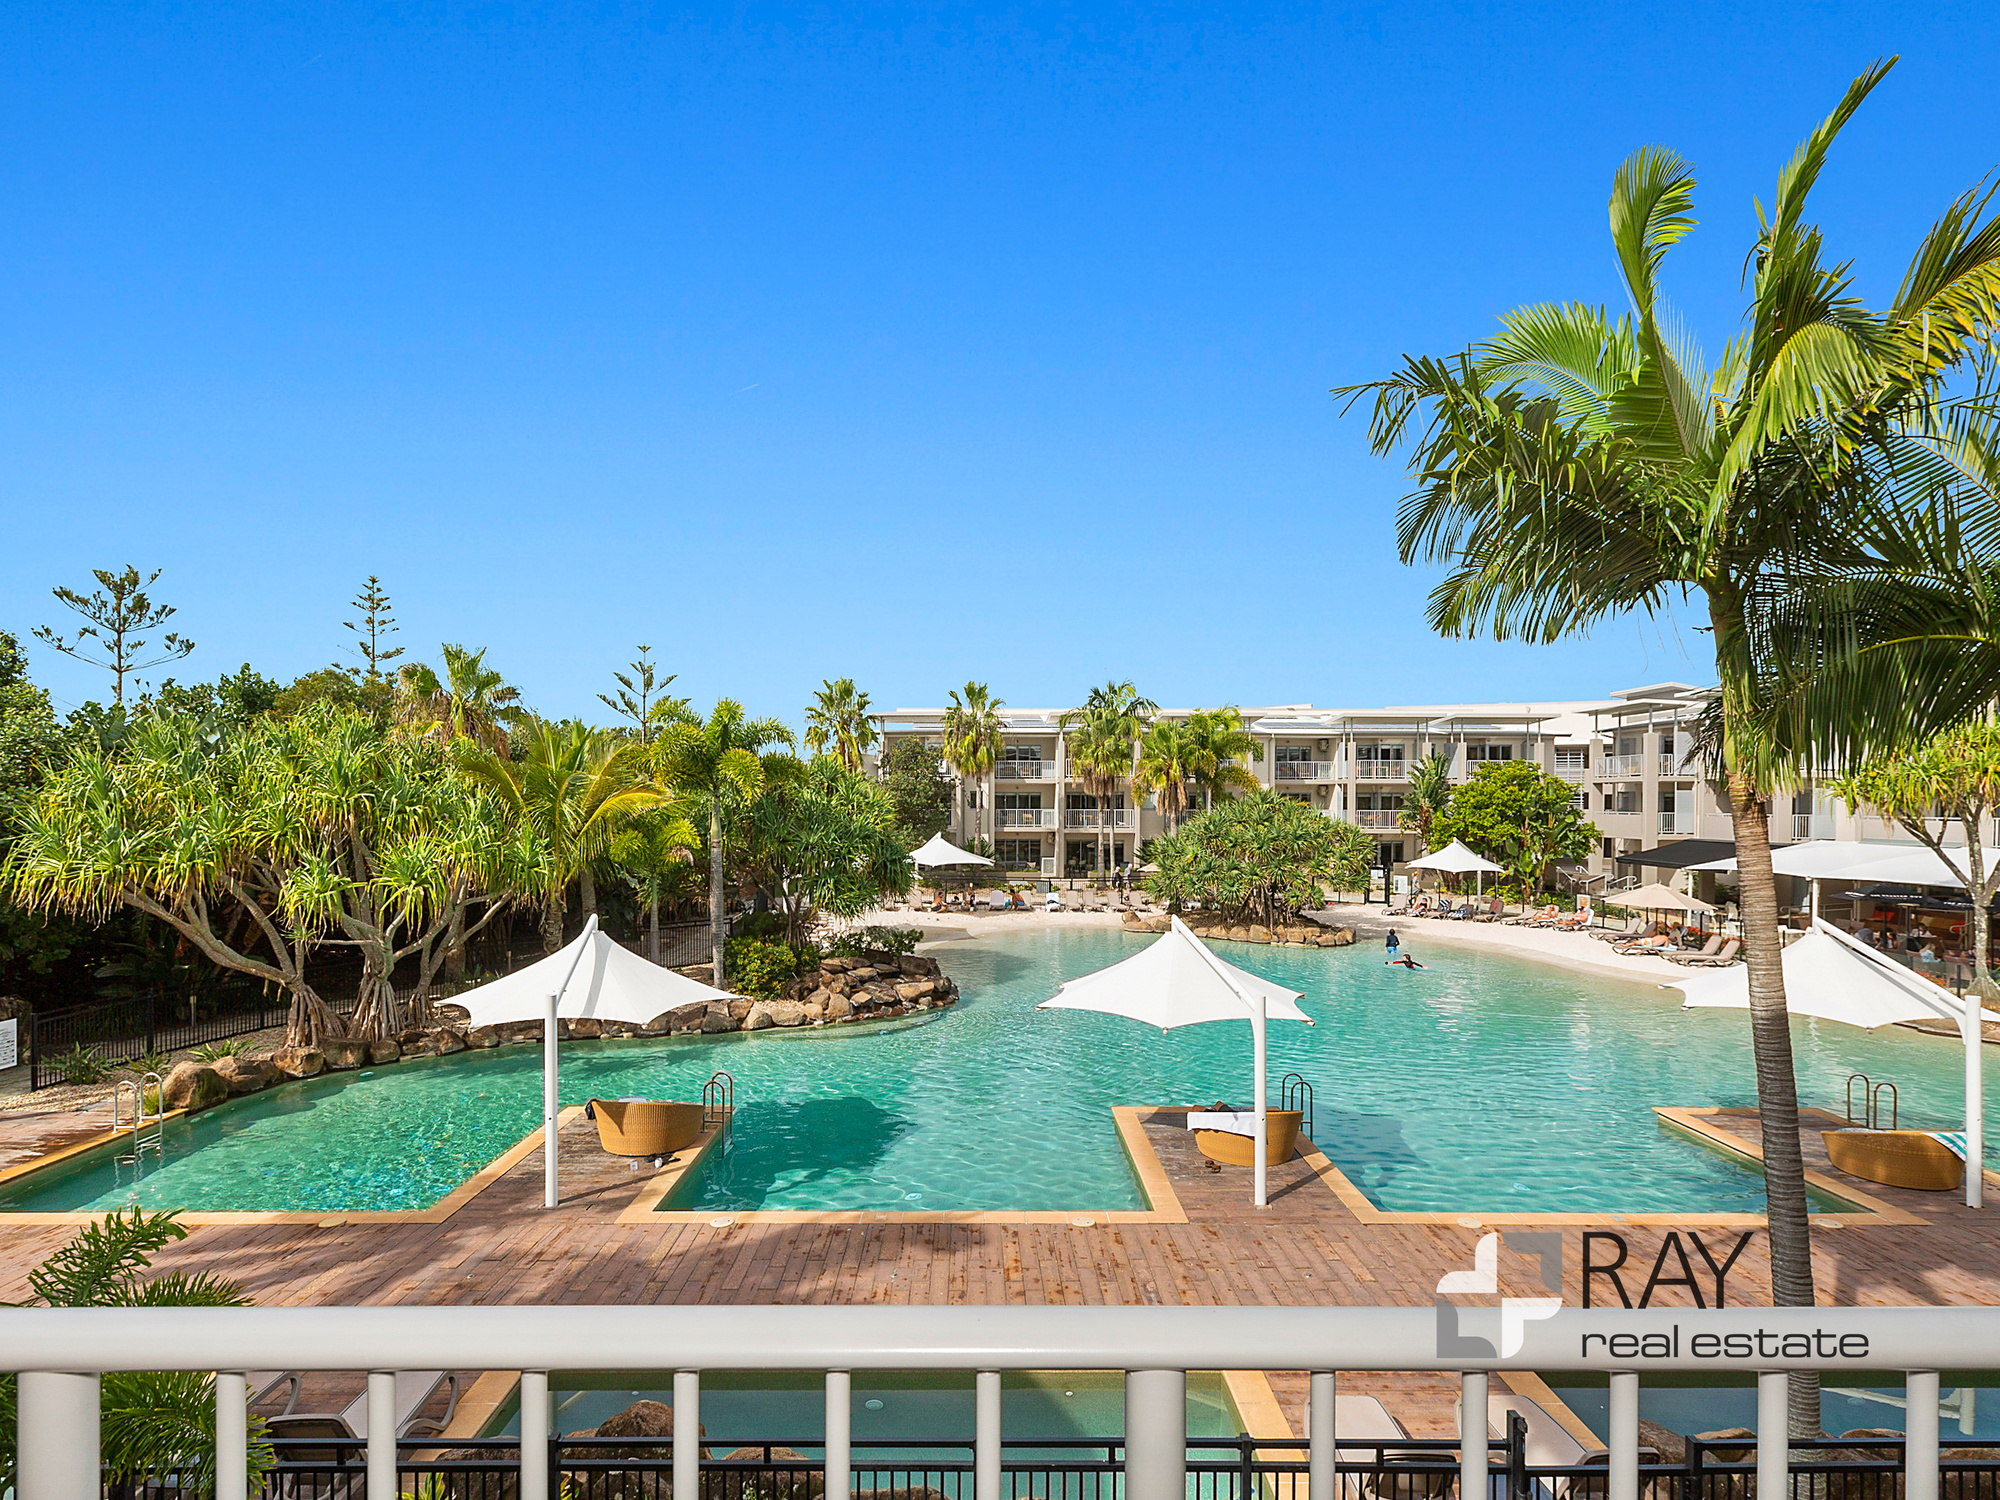 Lot 86 (6217/18) Peppers Resort – North east facing over central lagoon pool, 2-bedroom (dual key) apartment